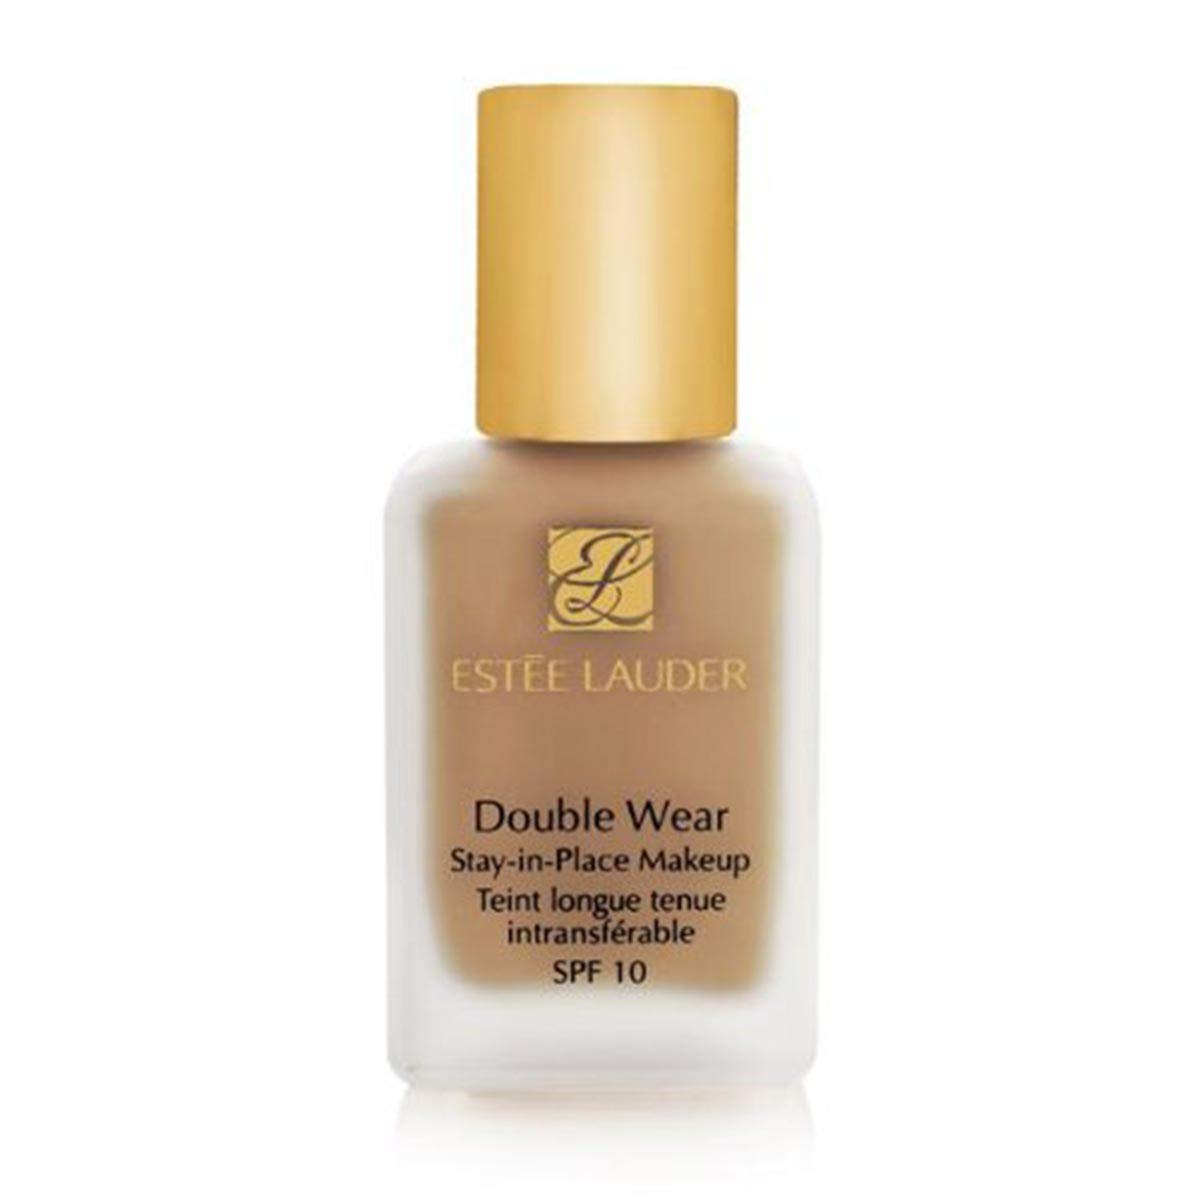 Estee Lauder Double Wear Stay-In-Place Makeup, 1 Ounce